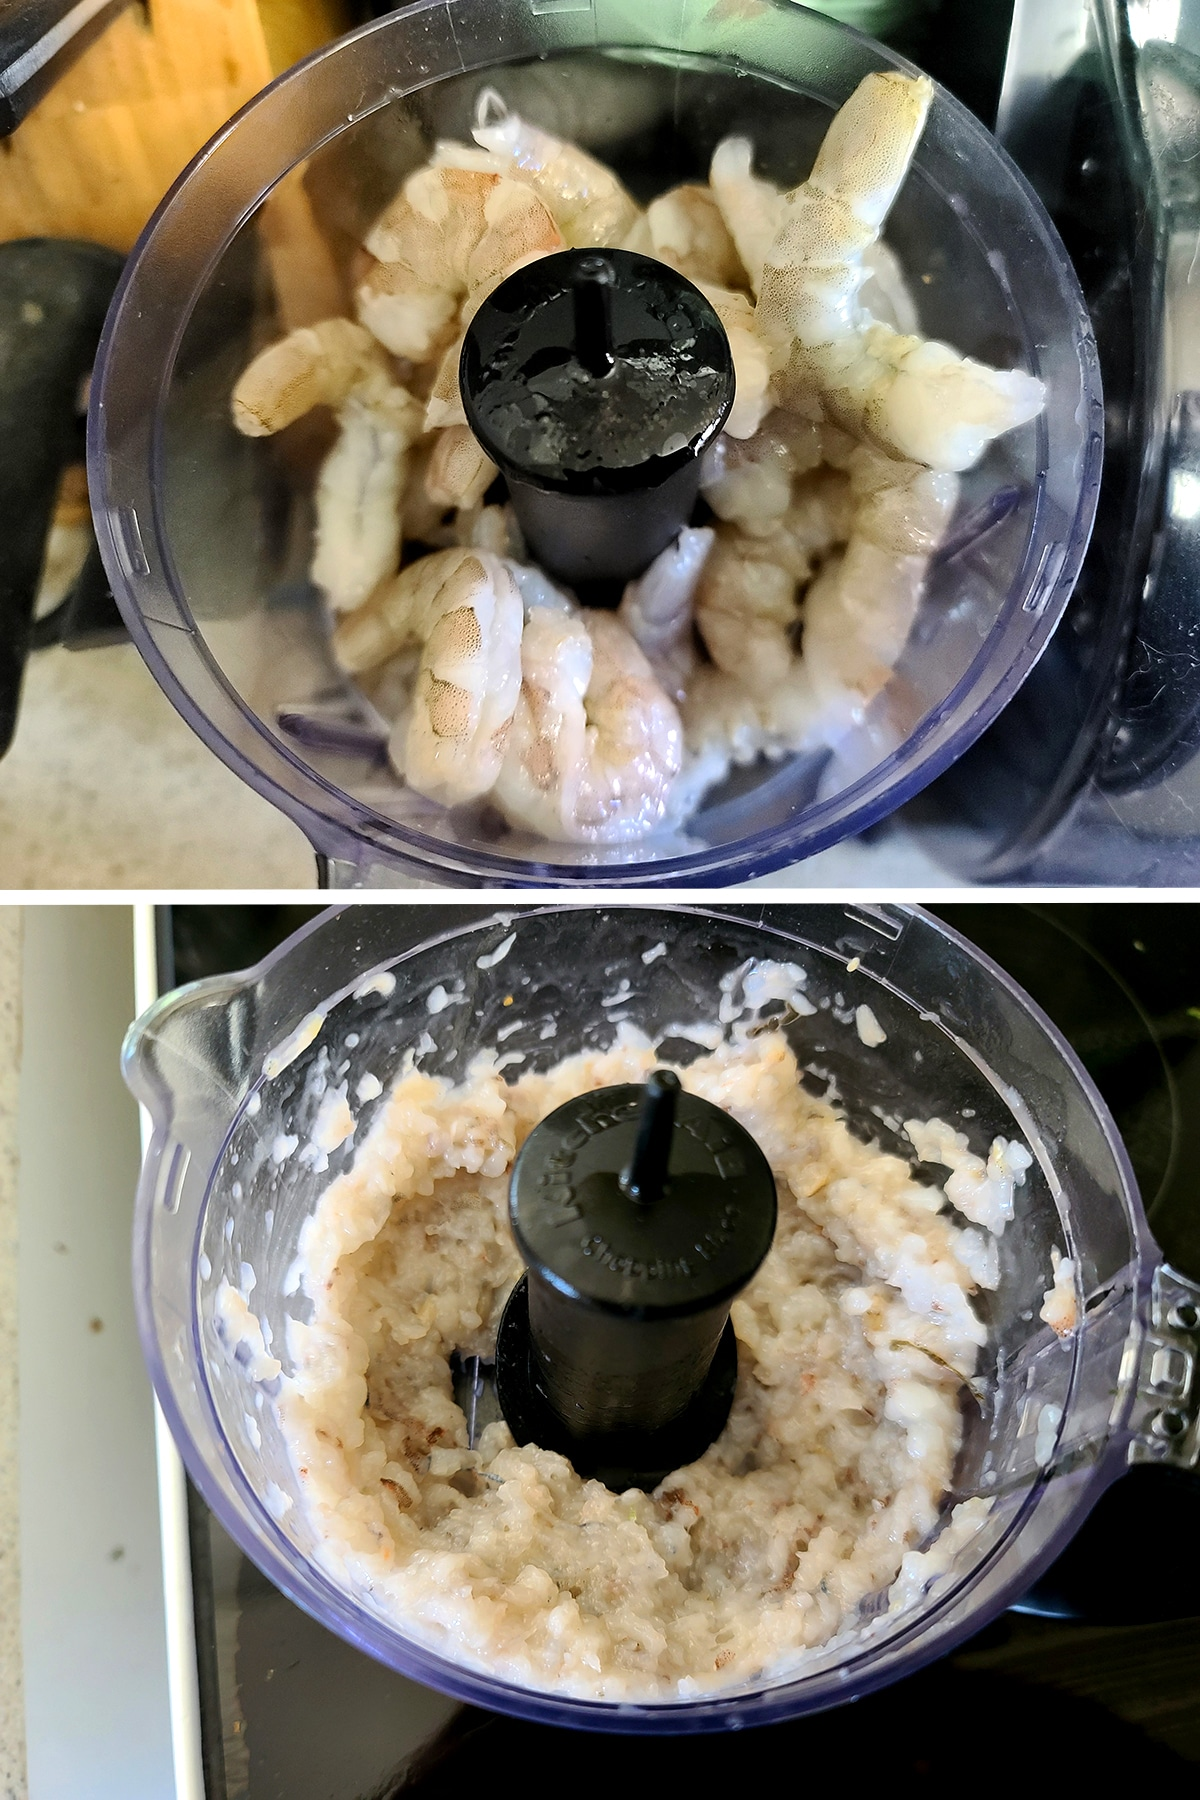 A small food processor with whole shrimp and then finely chopped shrimp.